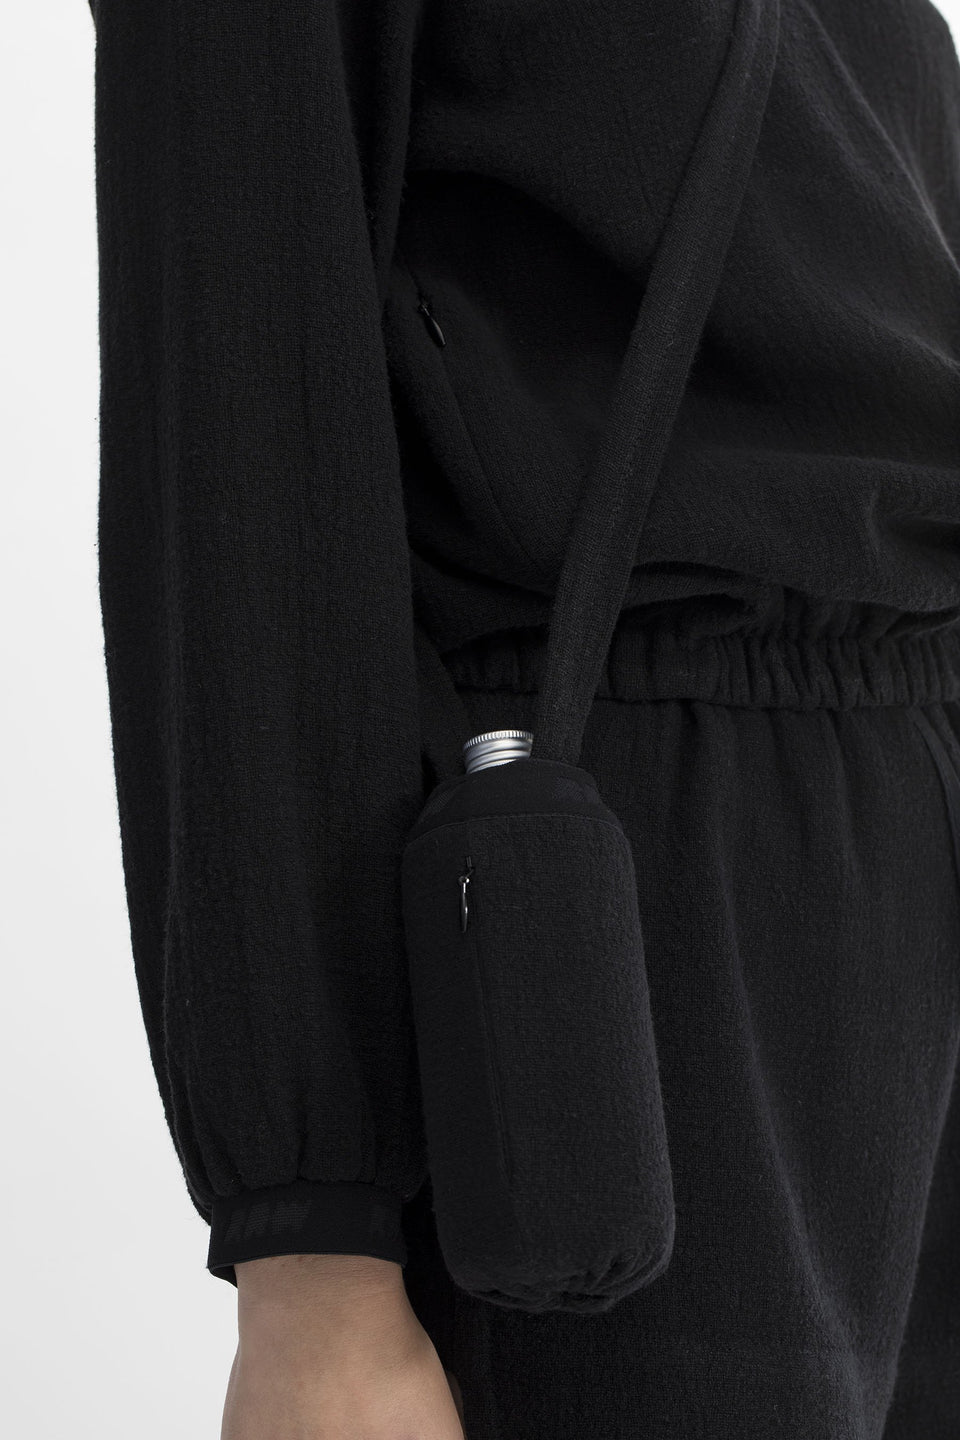 RAW U-Bottle Bag Black